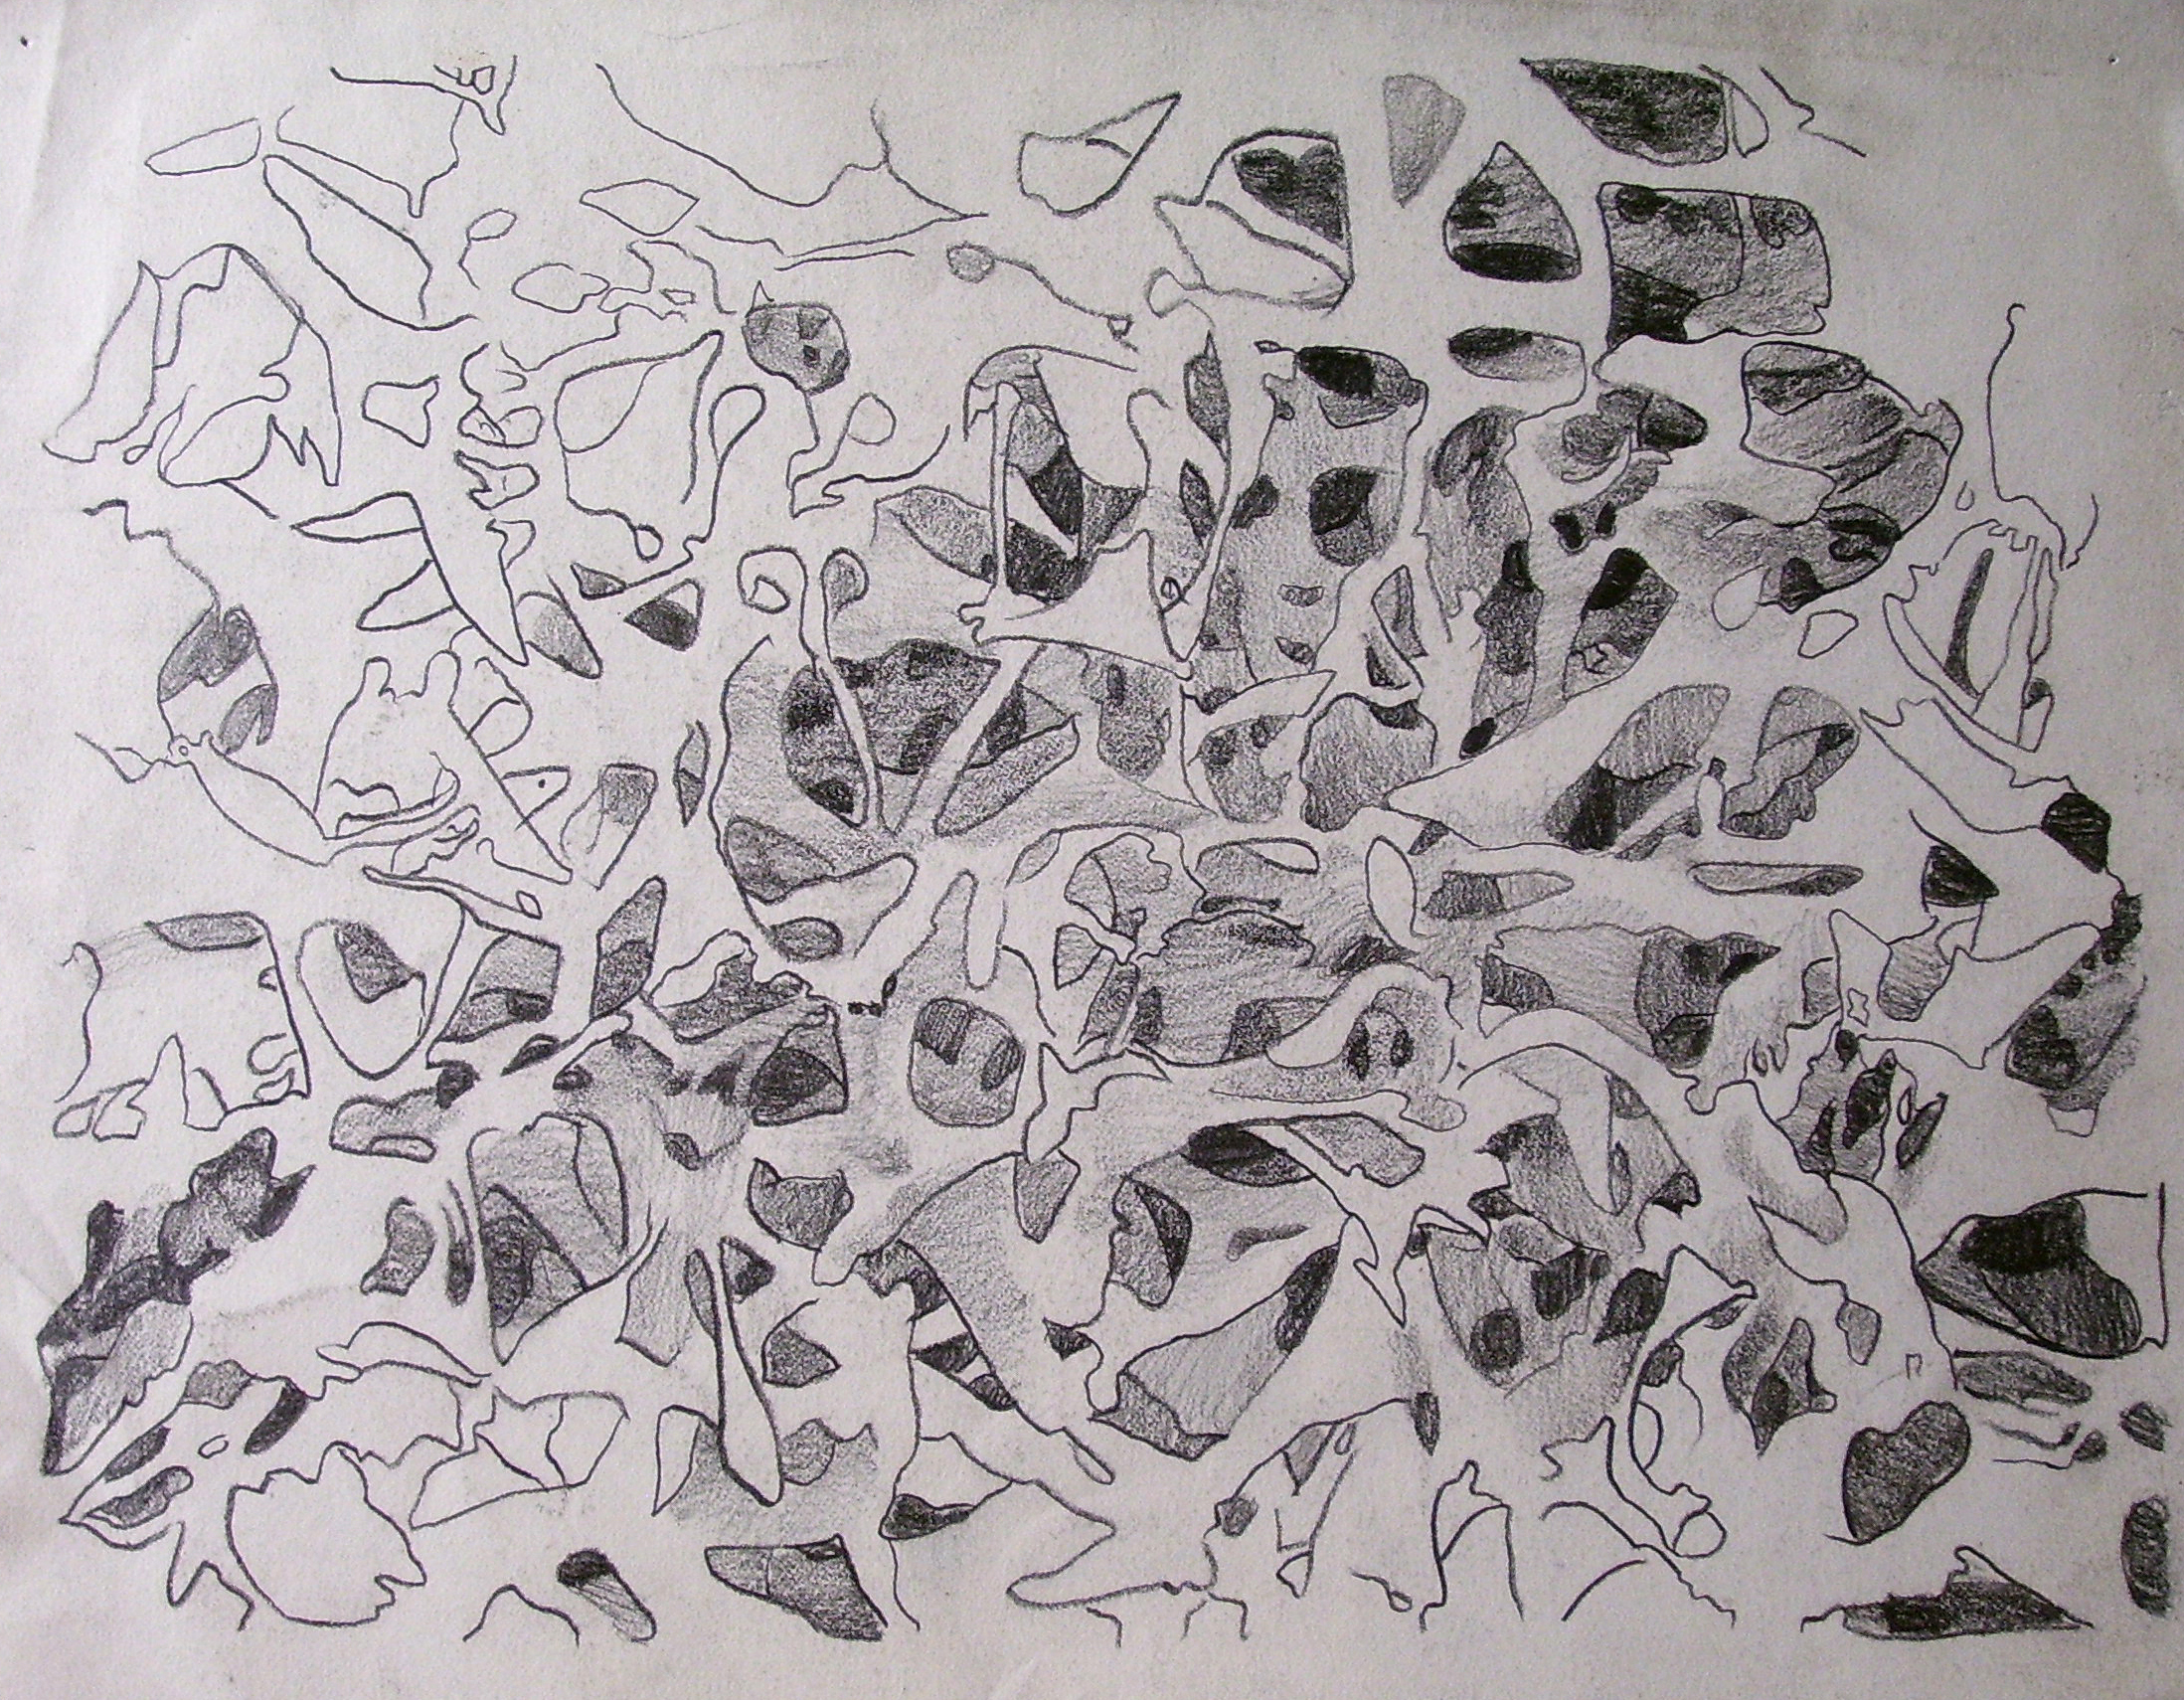 Galactic Sponge/ 2004/ graphite on paper/ 9 x 12 inches